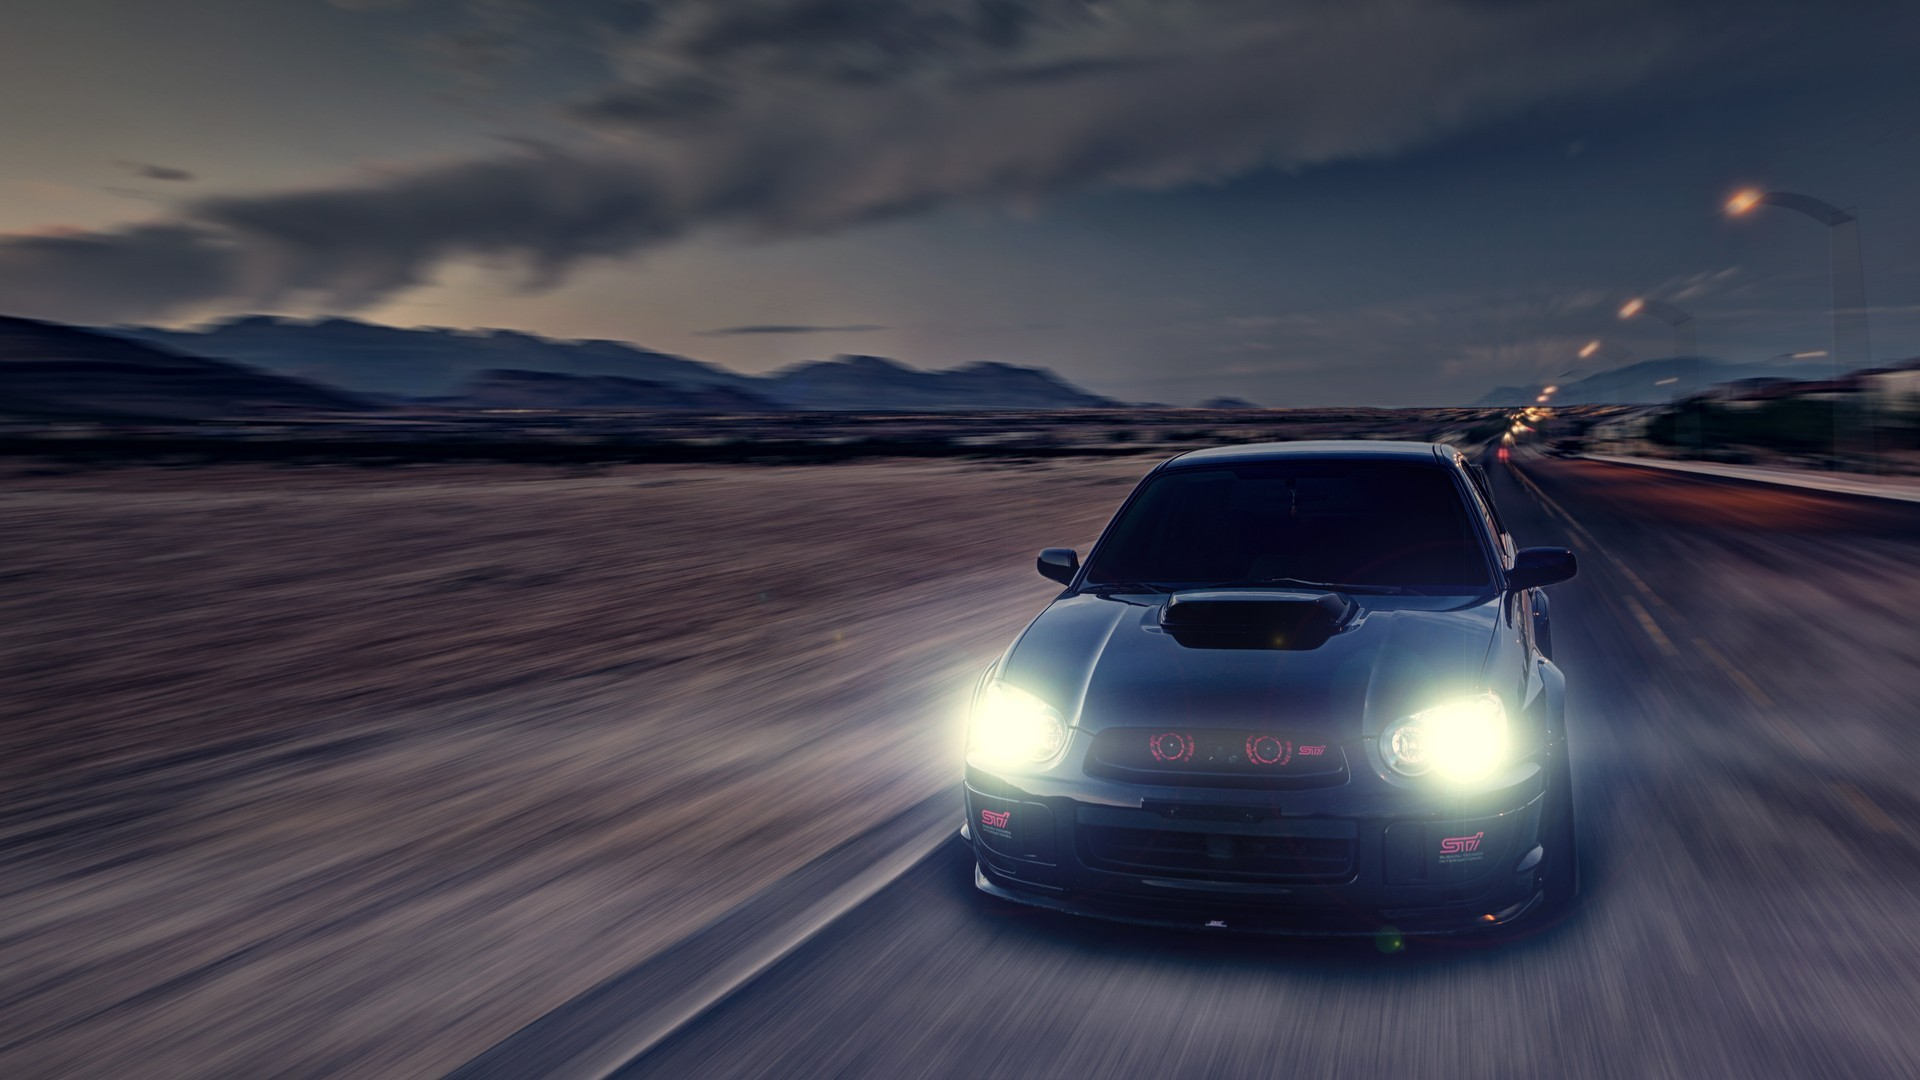 subaru wrx sti iphone wallpaper